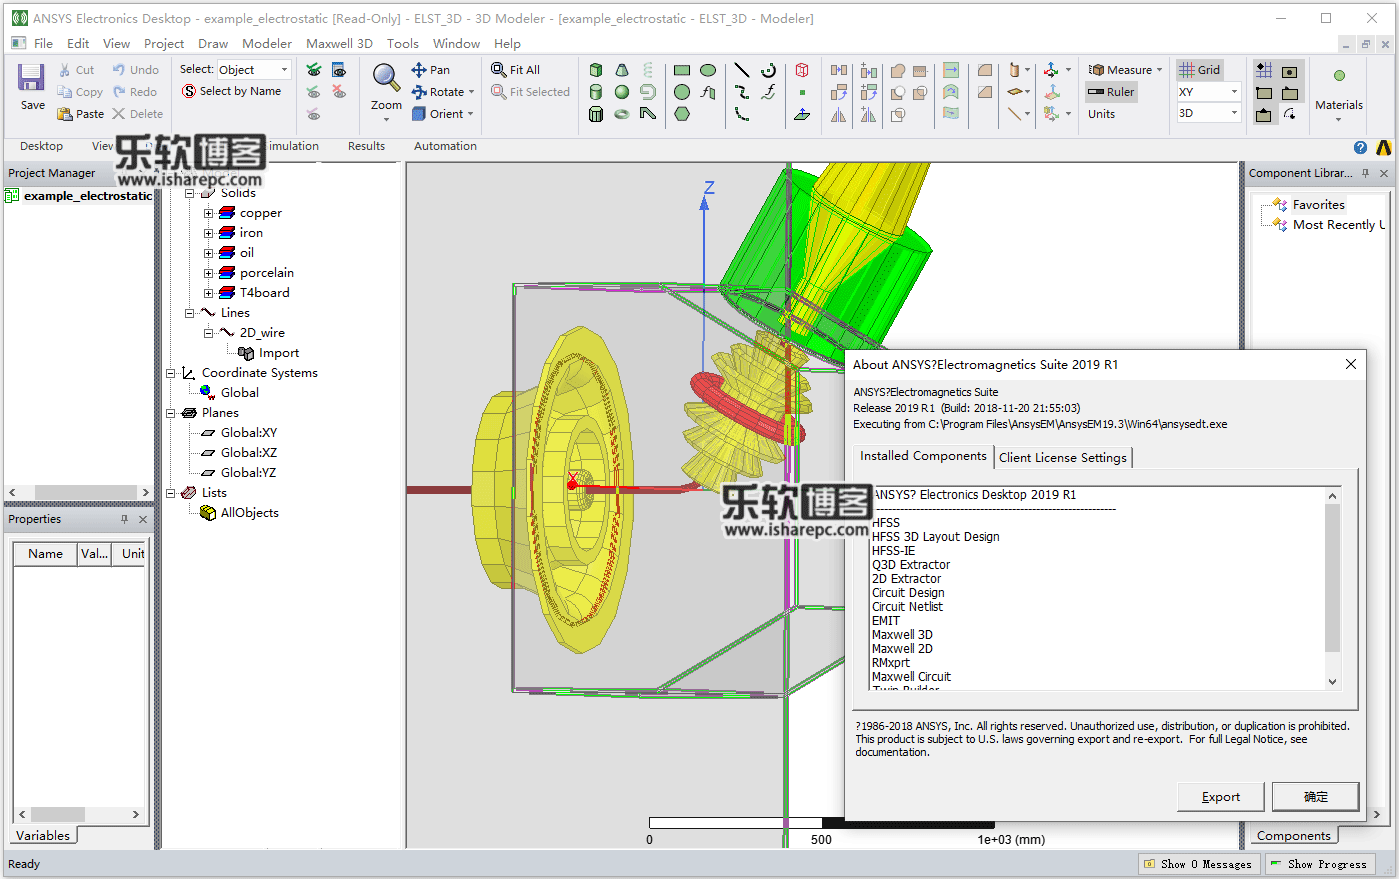 ANSYS Electronics Suite 2019 R1破解版